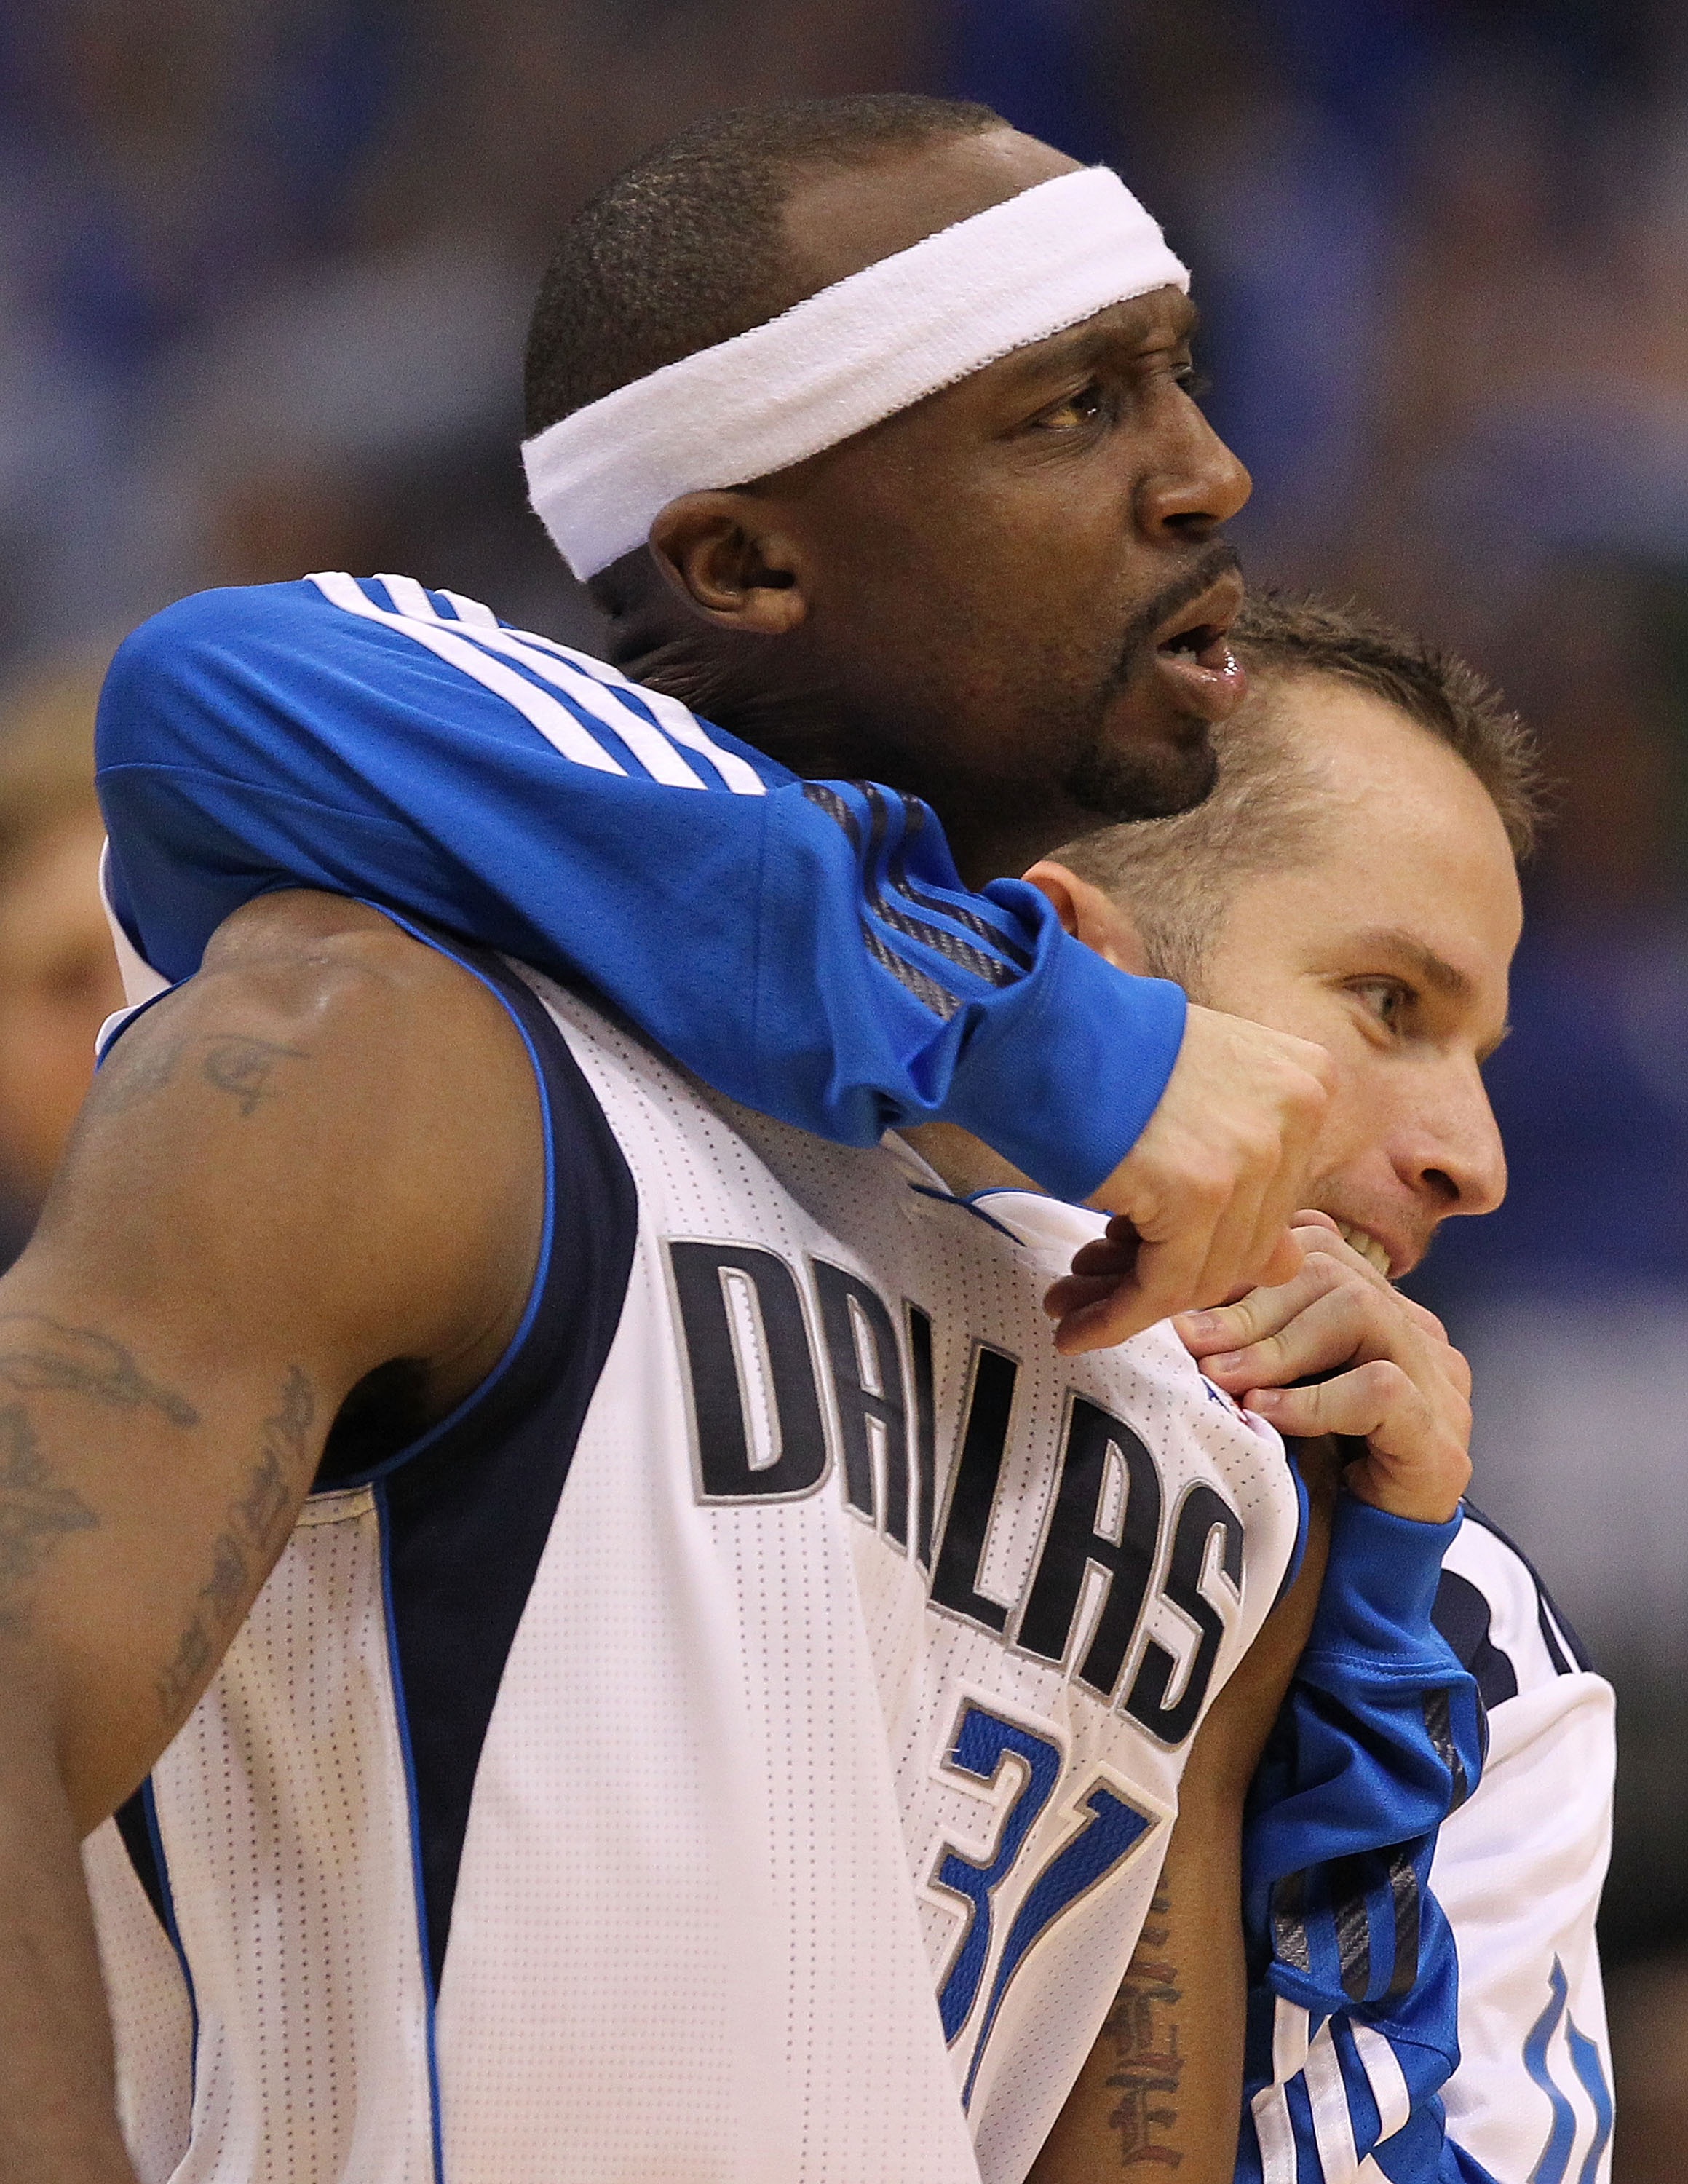 DALLAS, TX - MAY 08:  Guard Jason Terry #31 of the Dallas Mavericks reacts after a three-point shot with Jose Juan Barea against the Los Angeles Lakers in Game Four of the Western Conference Semifinals during the 2011 NBA Playoffs on May 8, 2011 at Americ